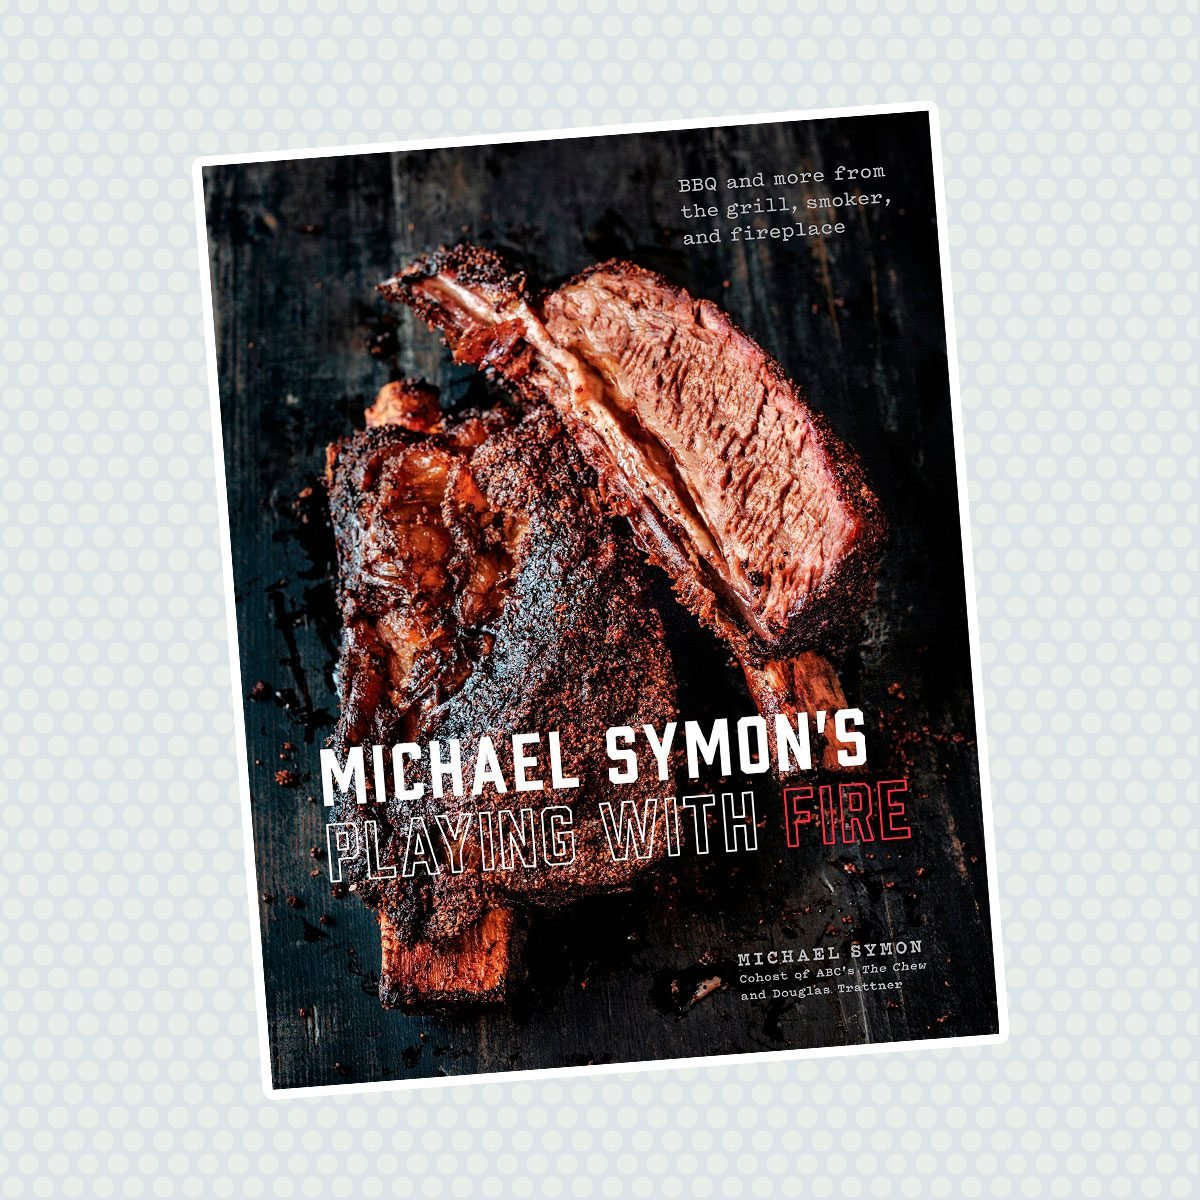 Michael Symon's Playing with Fire: BBQ and More from the Grill, Smoker and Fireplace